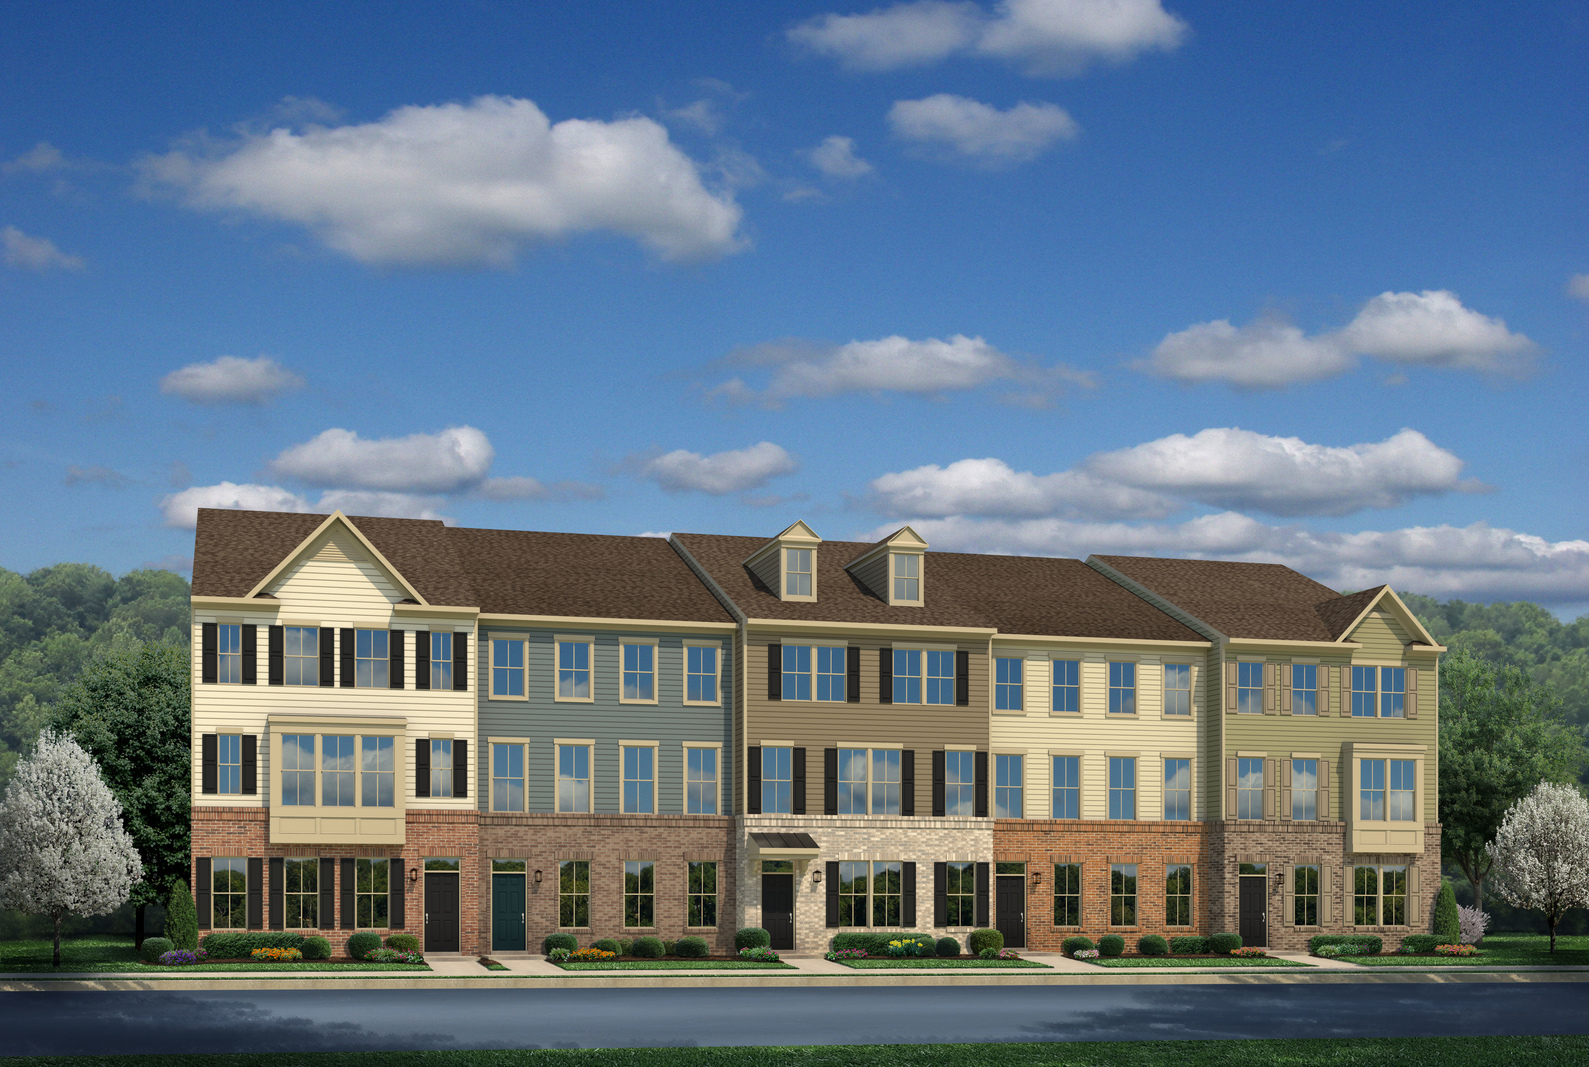 New Construction Townhomes For Sale Mpg00 Ryan Homes